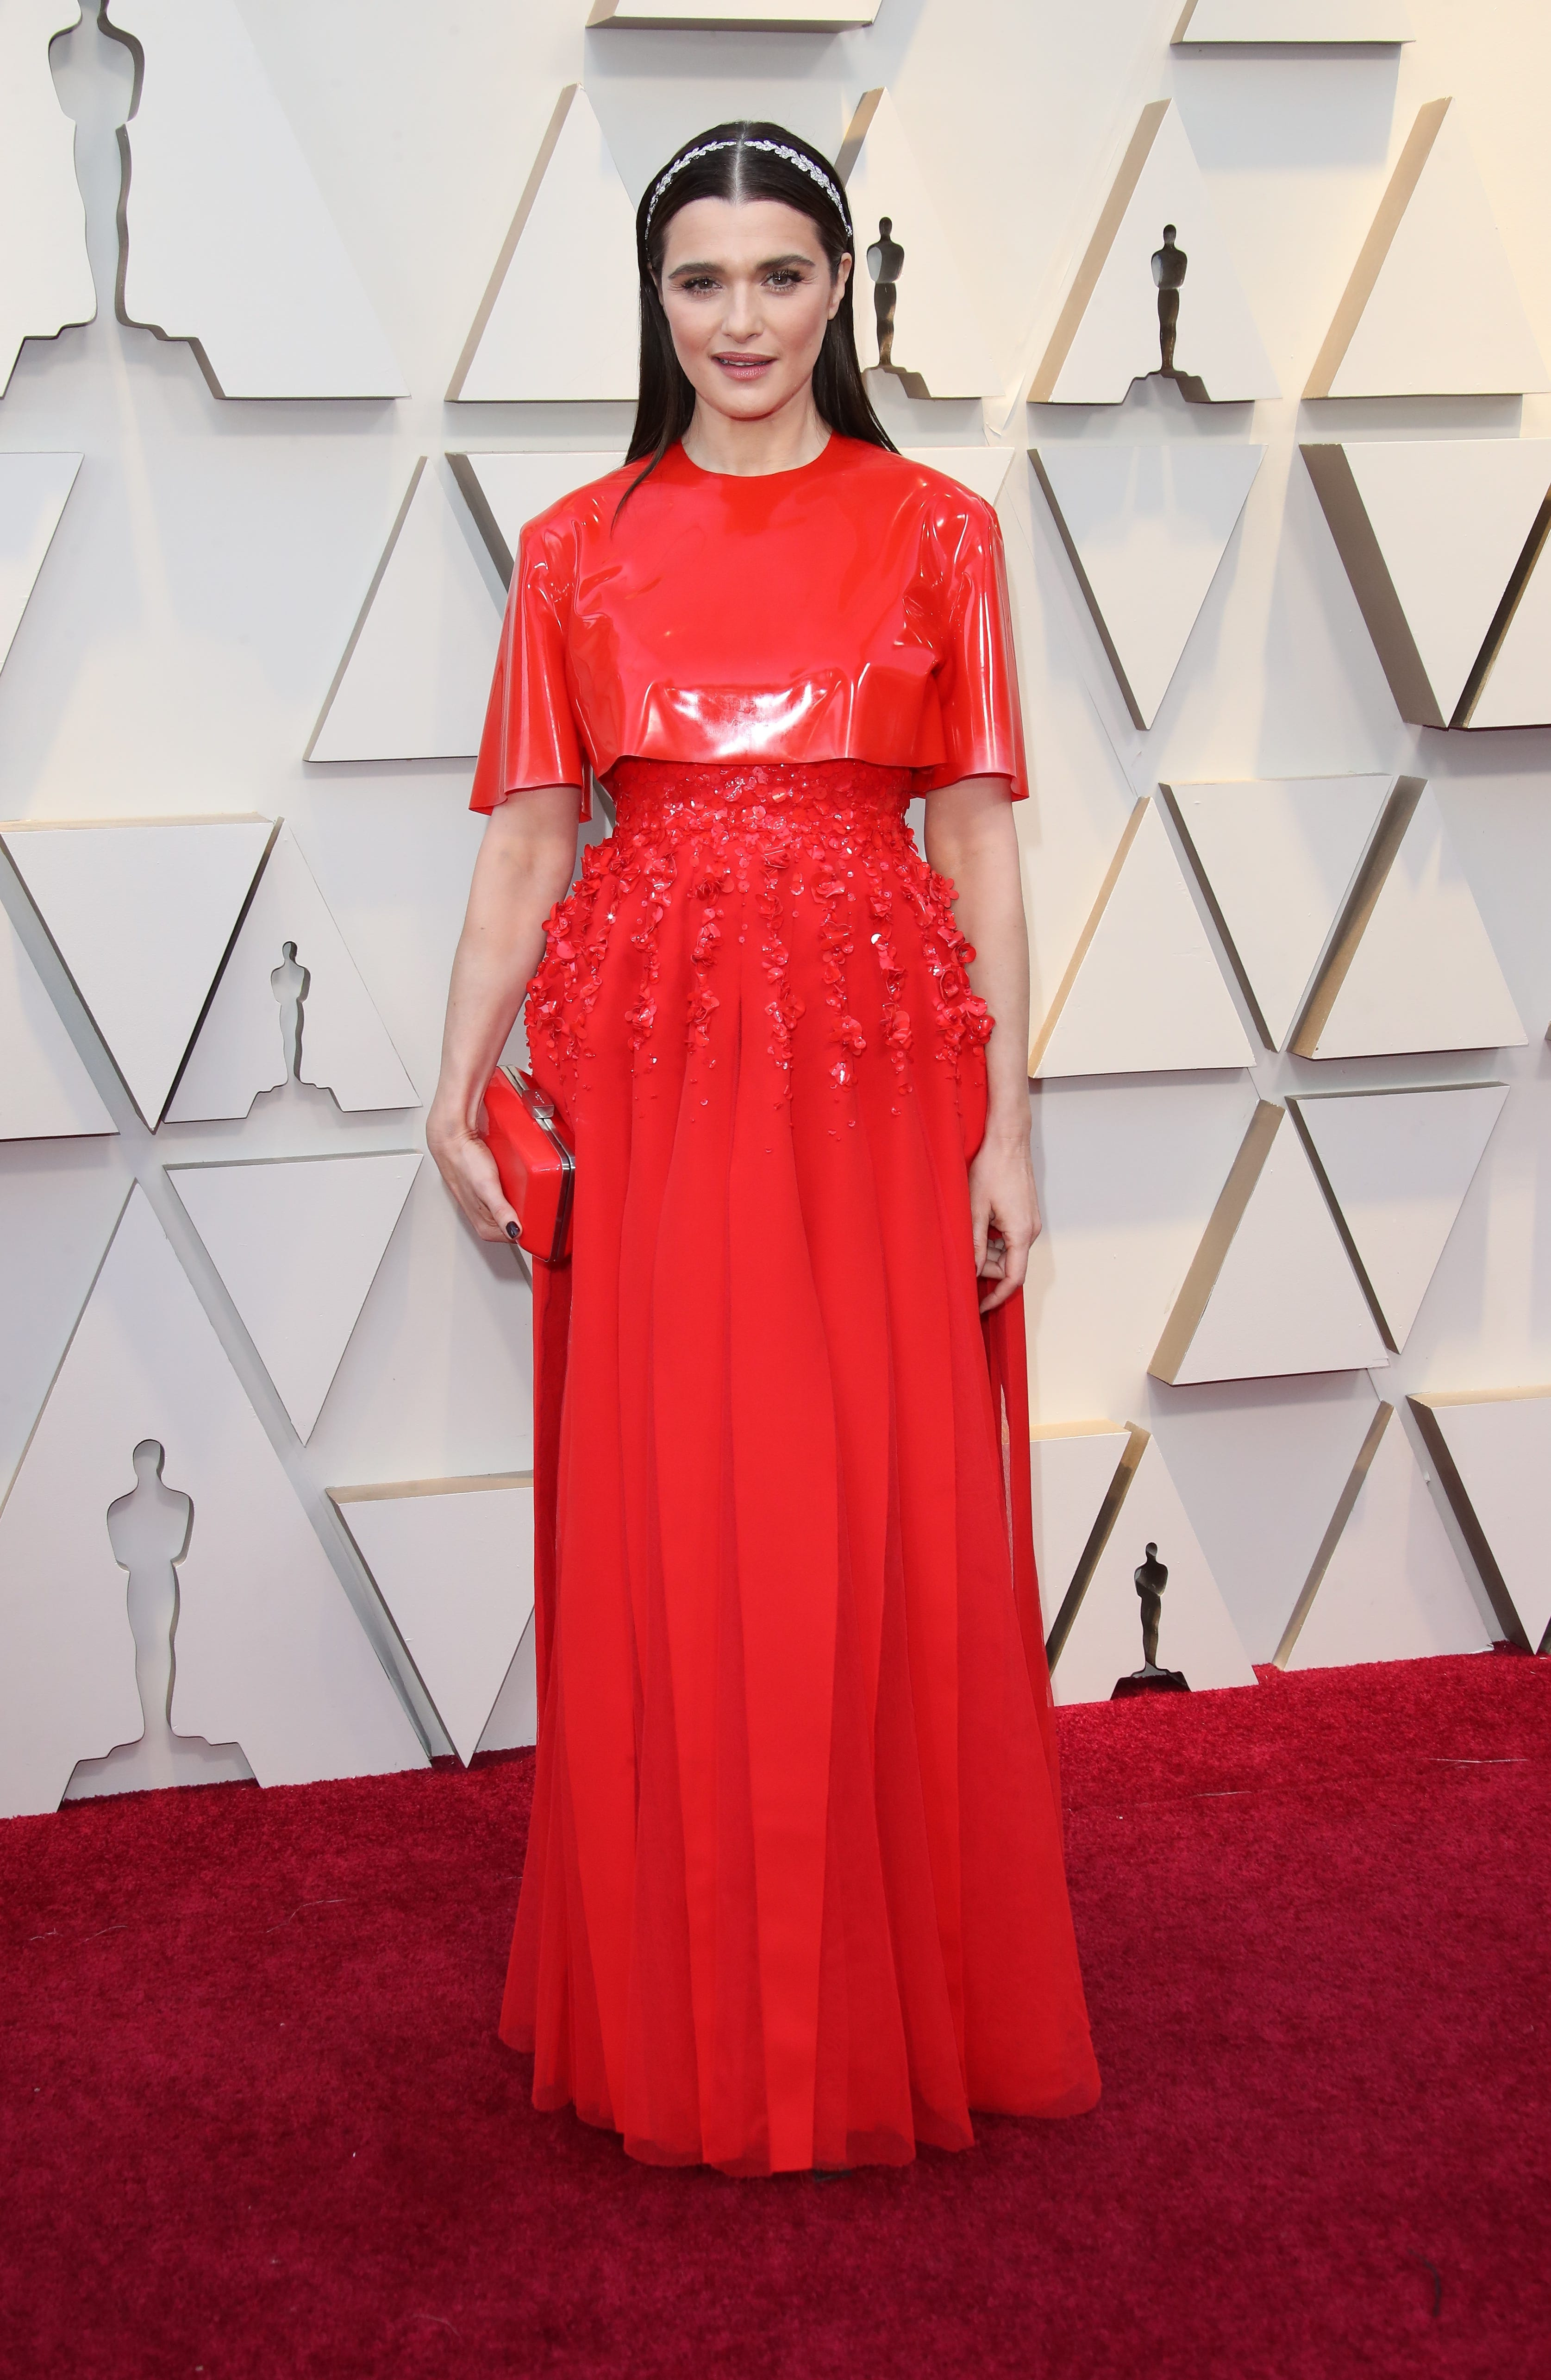 February 24, 2019; Los Angeles, CA, USA; Rachel Weisz arrives at the 91st Academy Awards at the Dolby Theatre. Mandatory Credit: Dan MacMedan-USA TODAY NETWORK (Via OlyDrop)